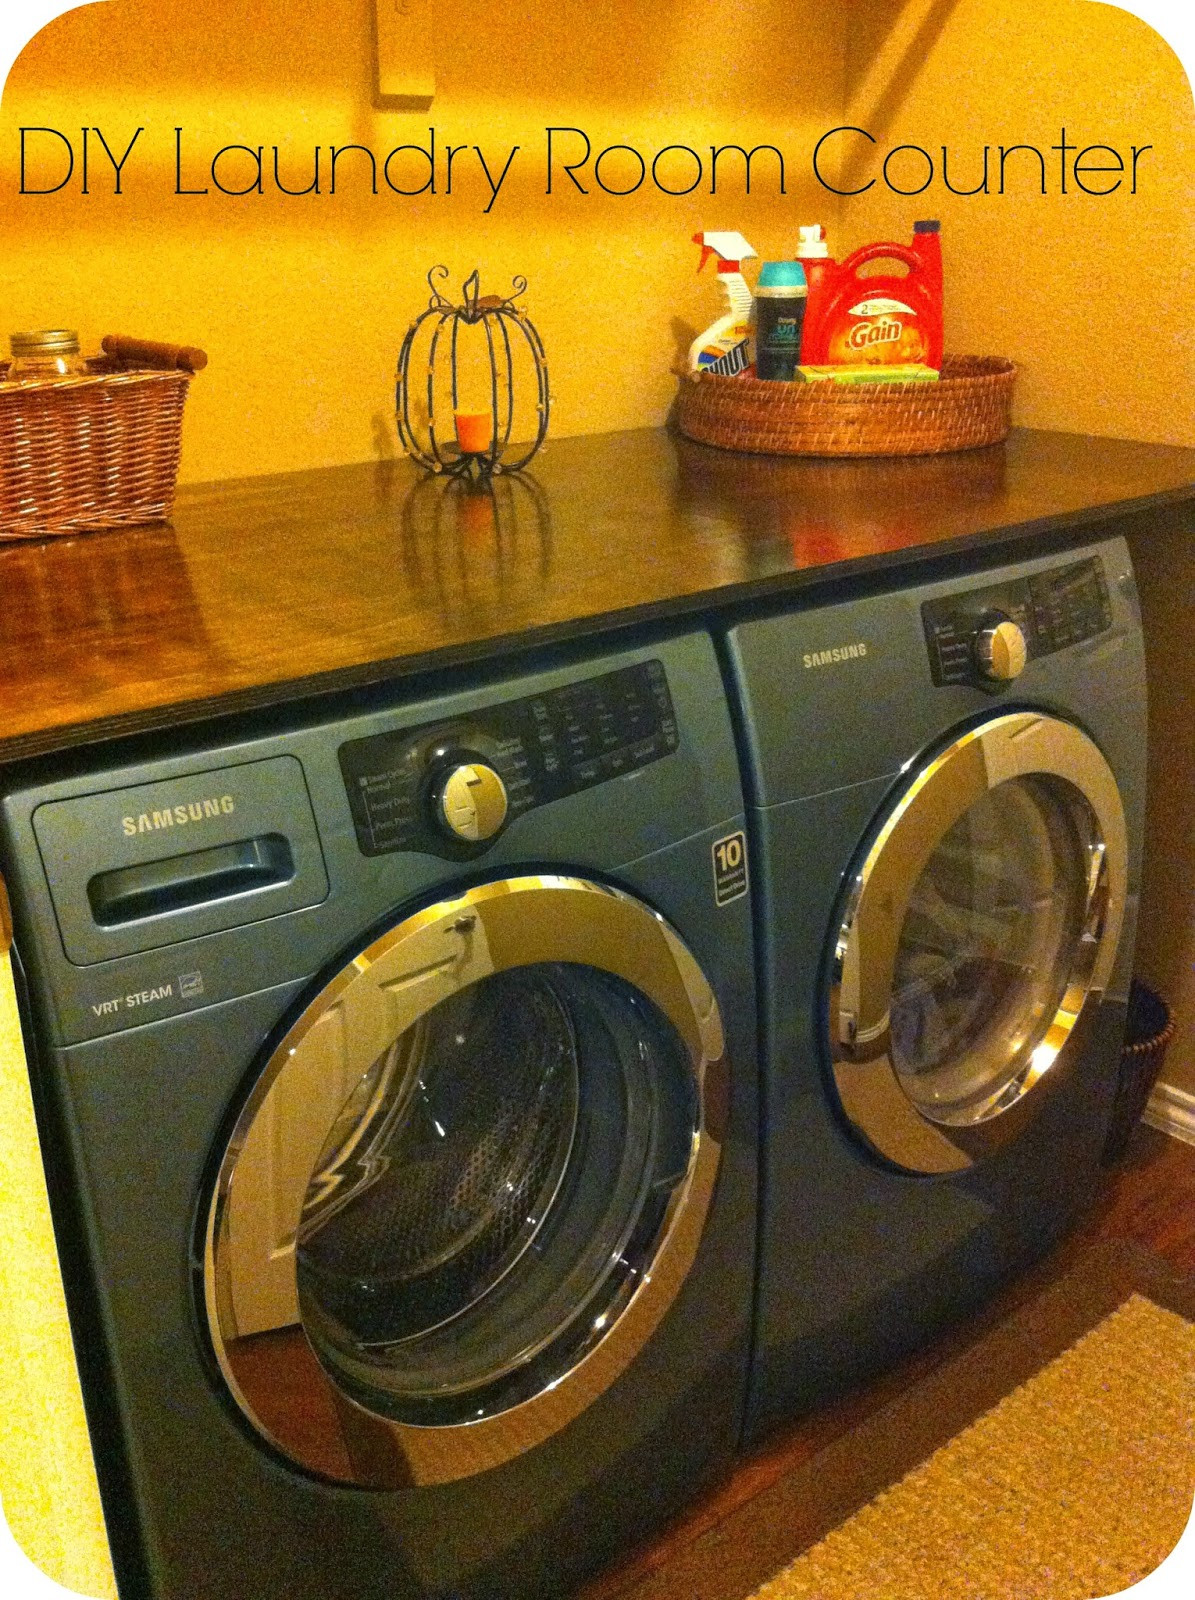 Best ideas about Diy Laundry Room . Save or Pin Barksdale Blessings DIY Laundry Room Counter Now.